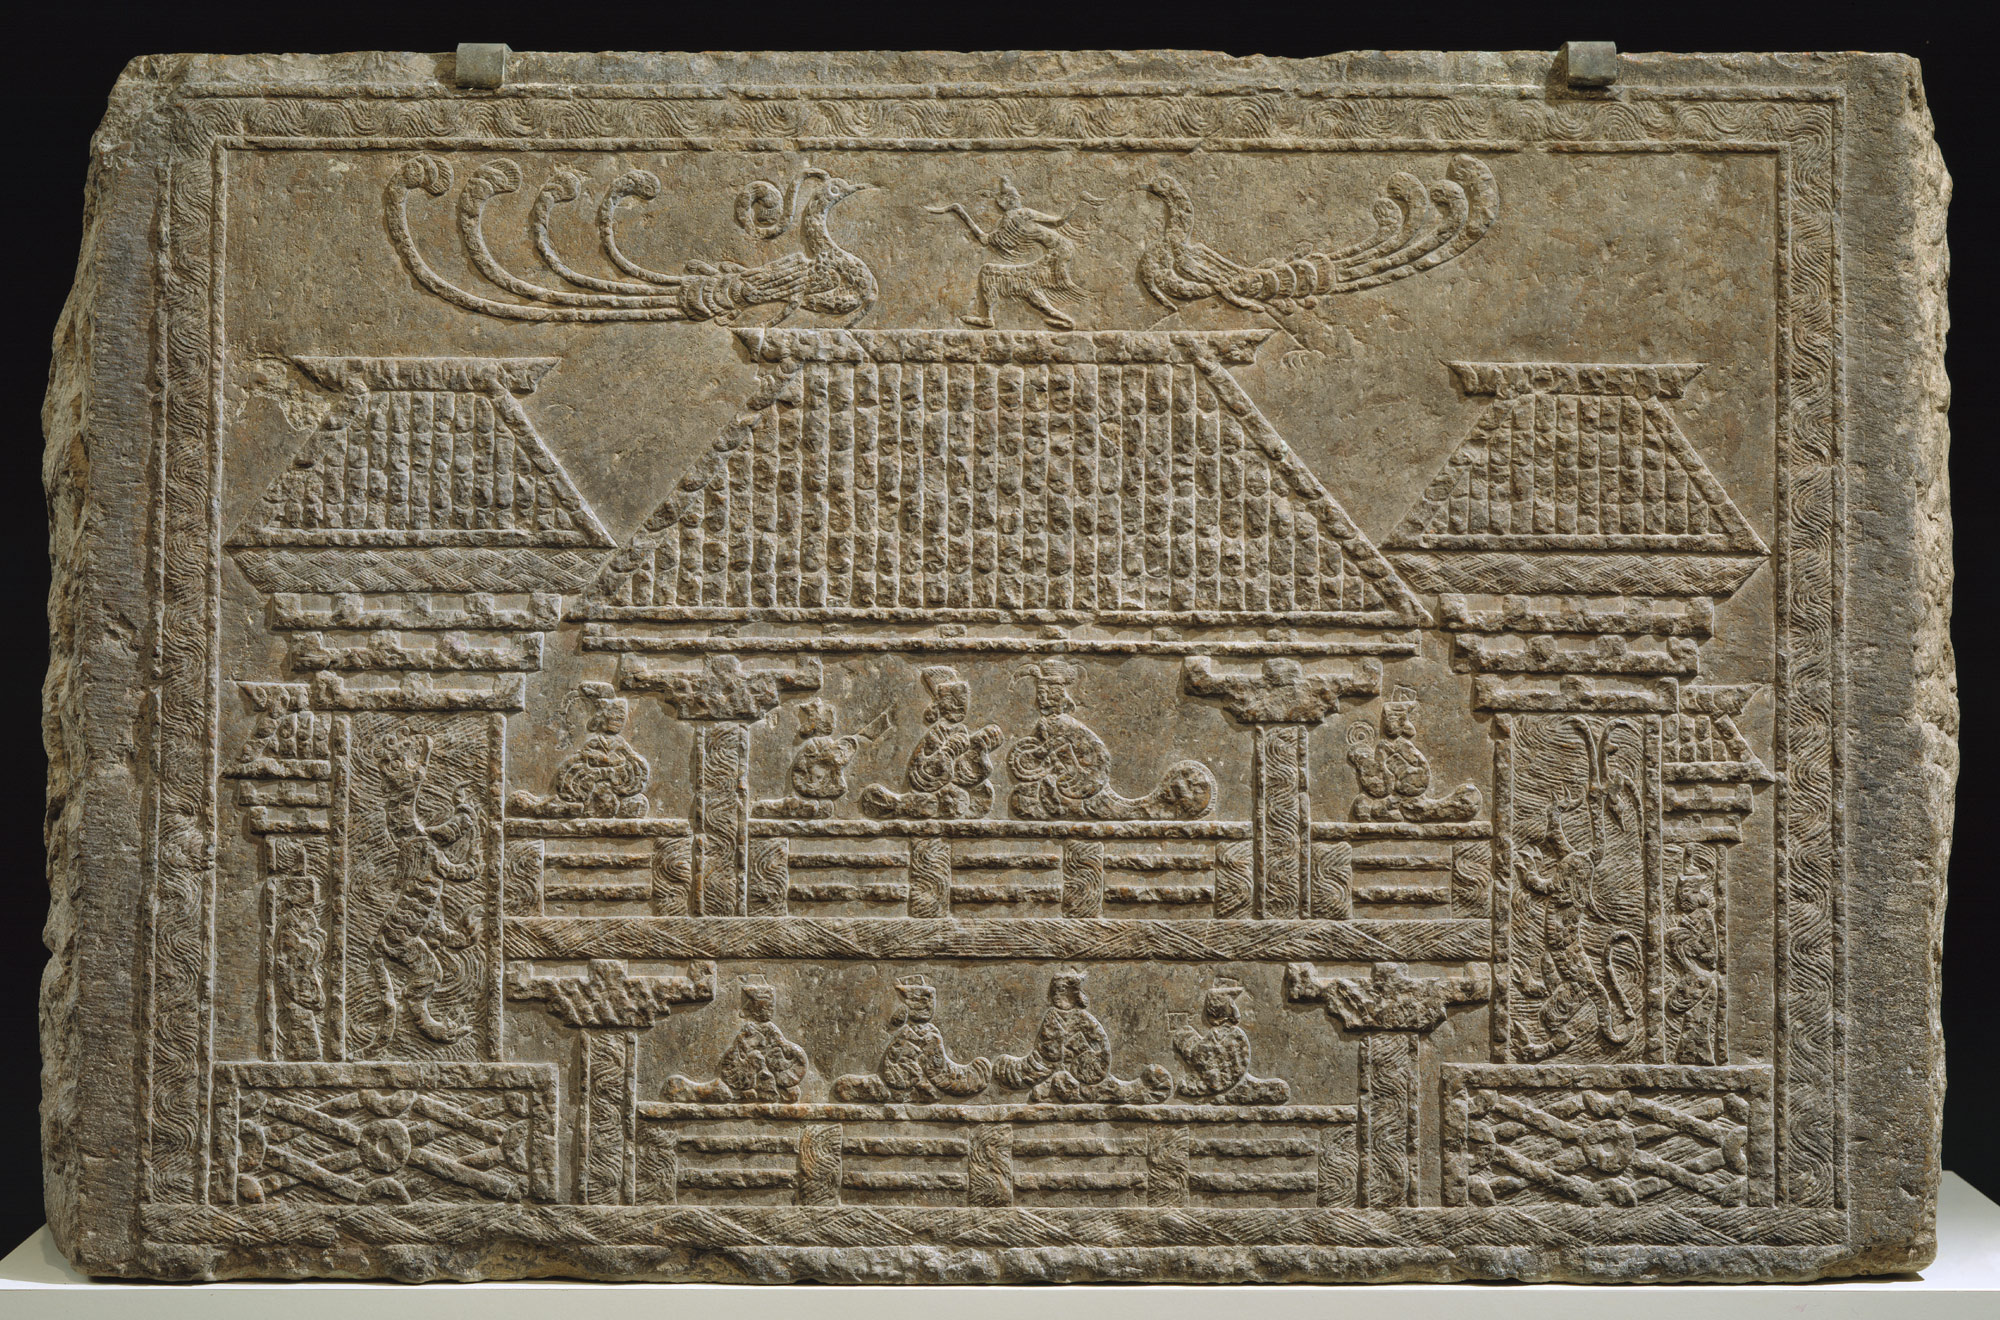 Tomb Panel with Relief of Figures in a Pavilion